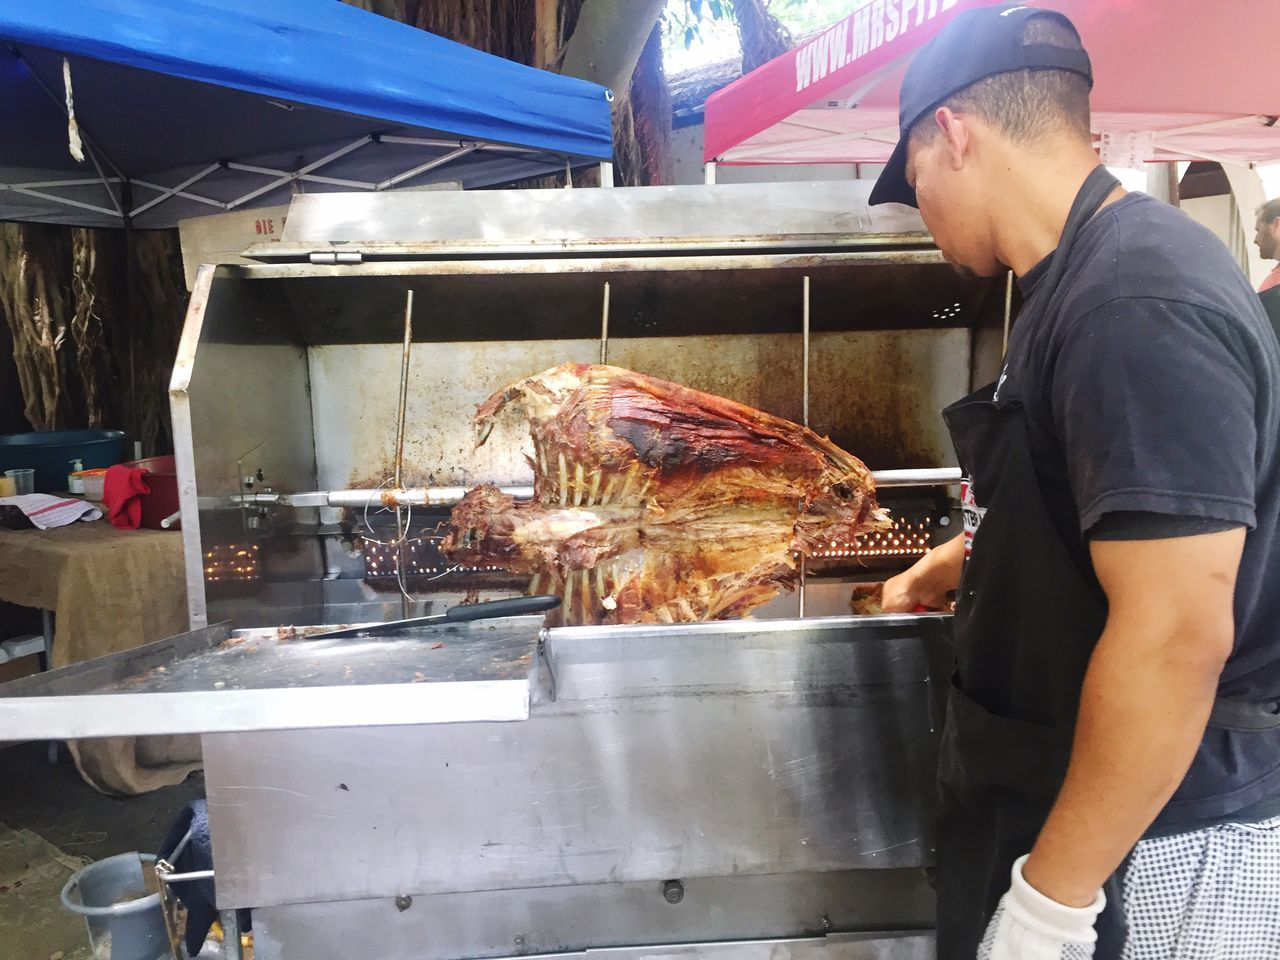 Braai Barbeque Family Market Commercial Kitchen Food Working Food And Drink Establishment Men One Person Food And Drink Real People Indoors  Freshness Occupation Meat One Man Only Bakery Only Men Heat - Temperature Adults Only Grilled Adult Manual Worker